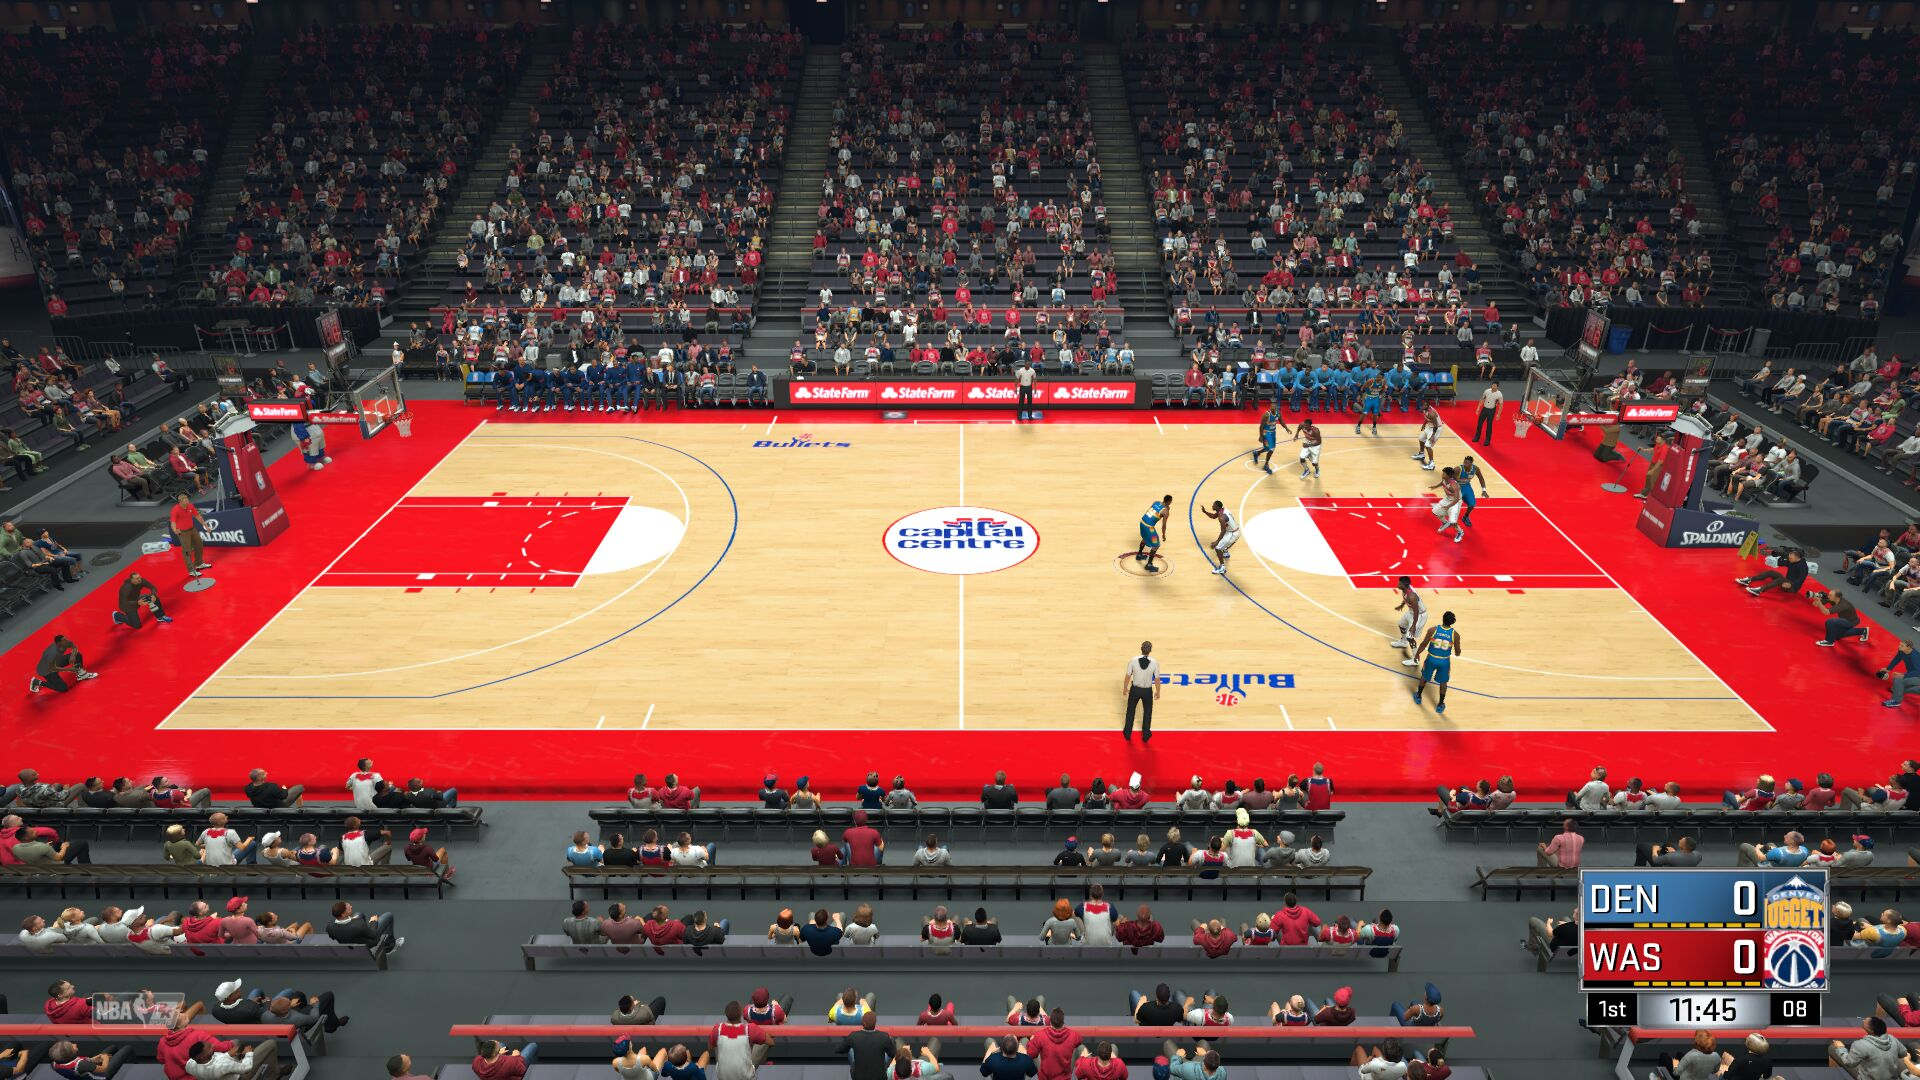 89-90 Washington Bullets Court